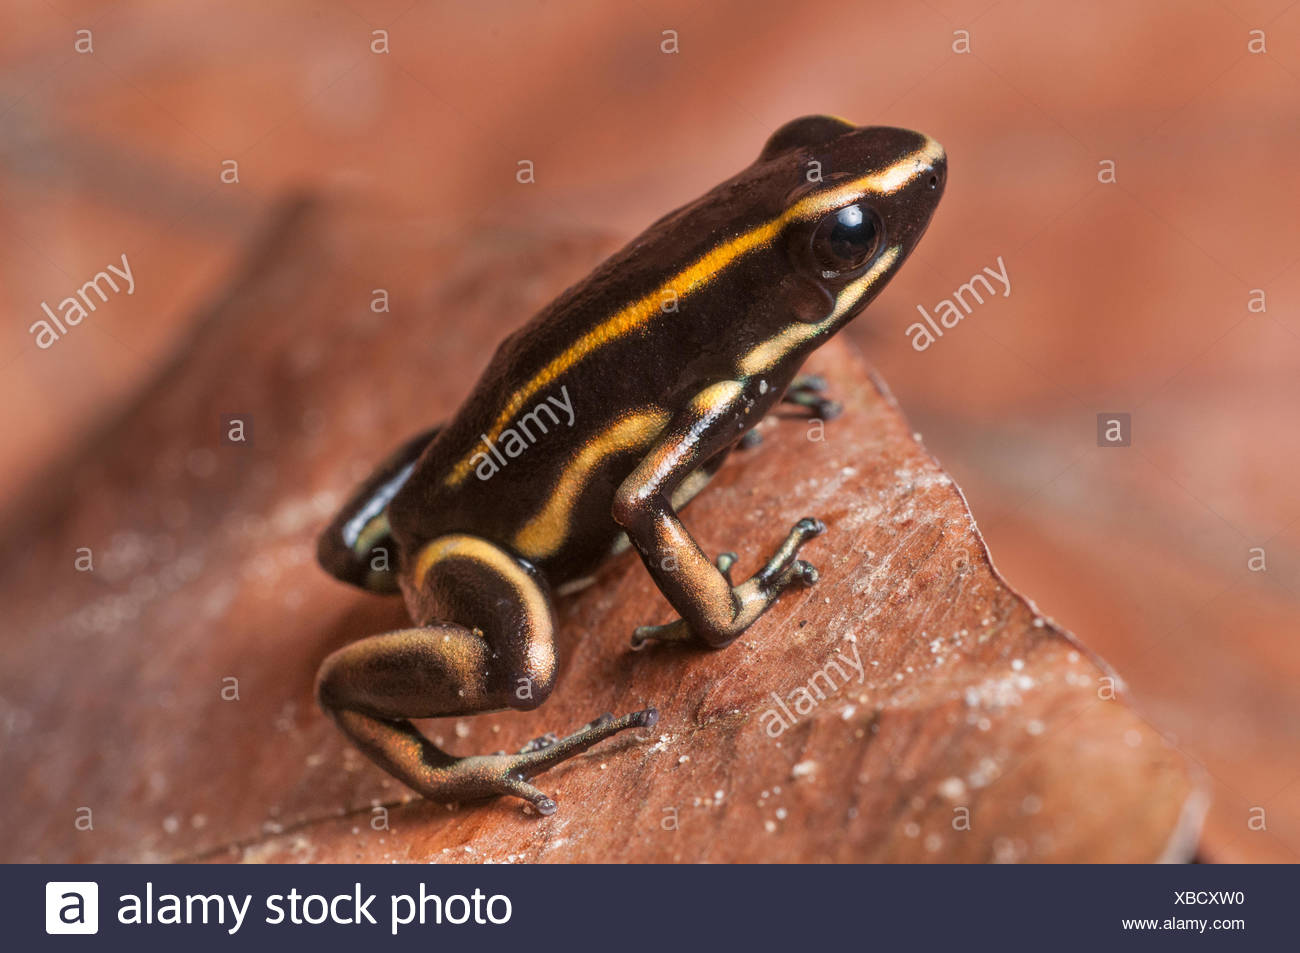 Yellow-striped Poison Dart Frog (Dendrobates truncatus) in leaf litter on forest floor, Paujil Nature Reserve, Magdalena Valley, Colombia, South America. - Stock Image